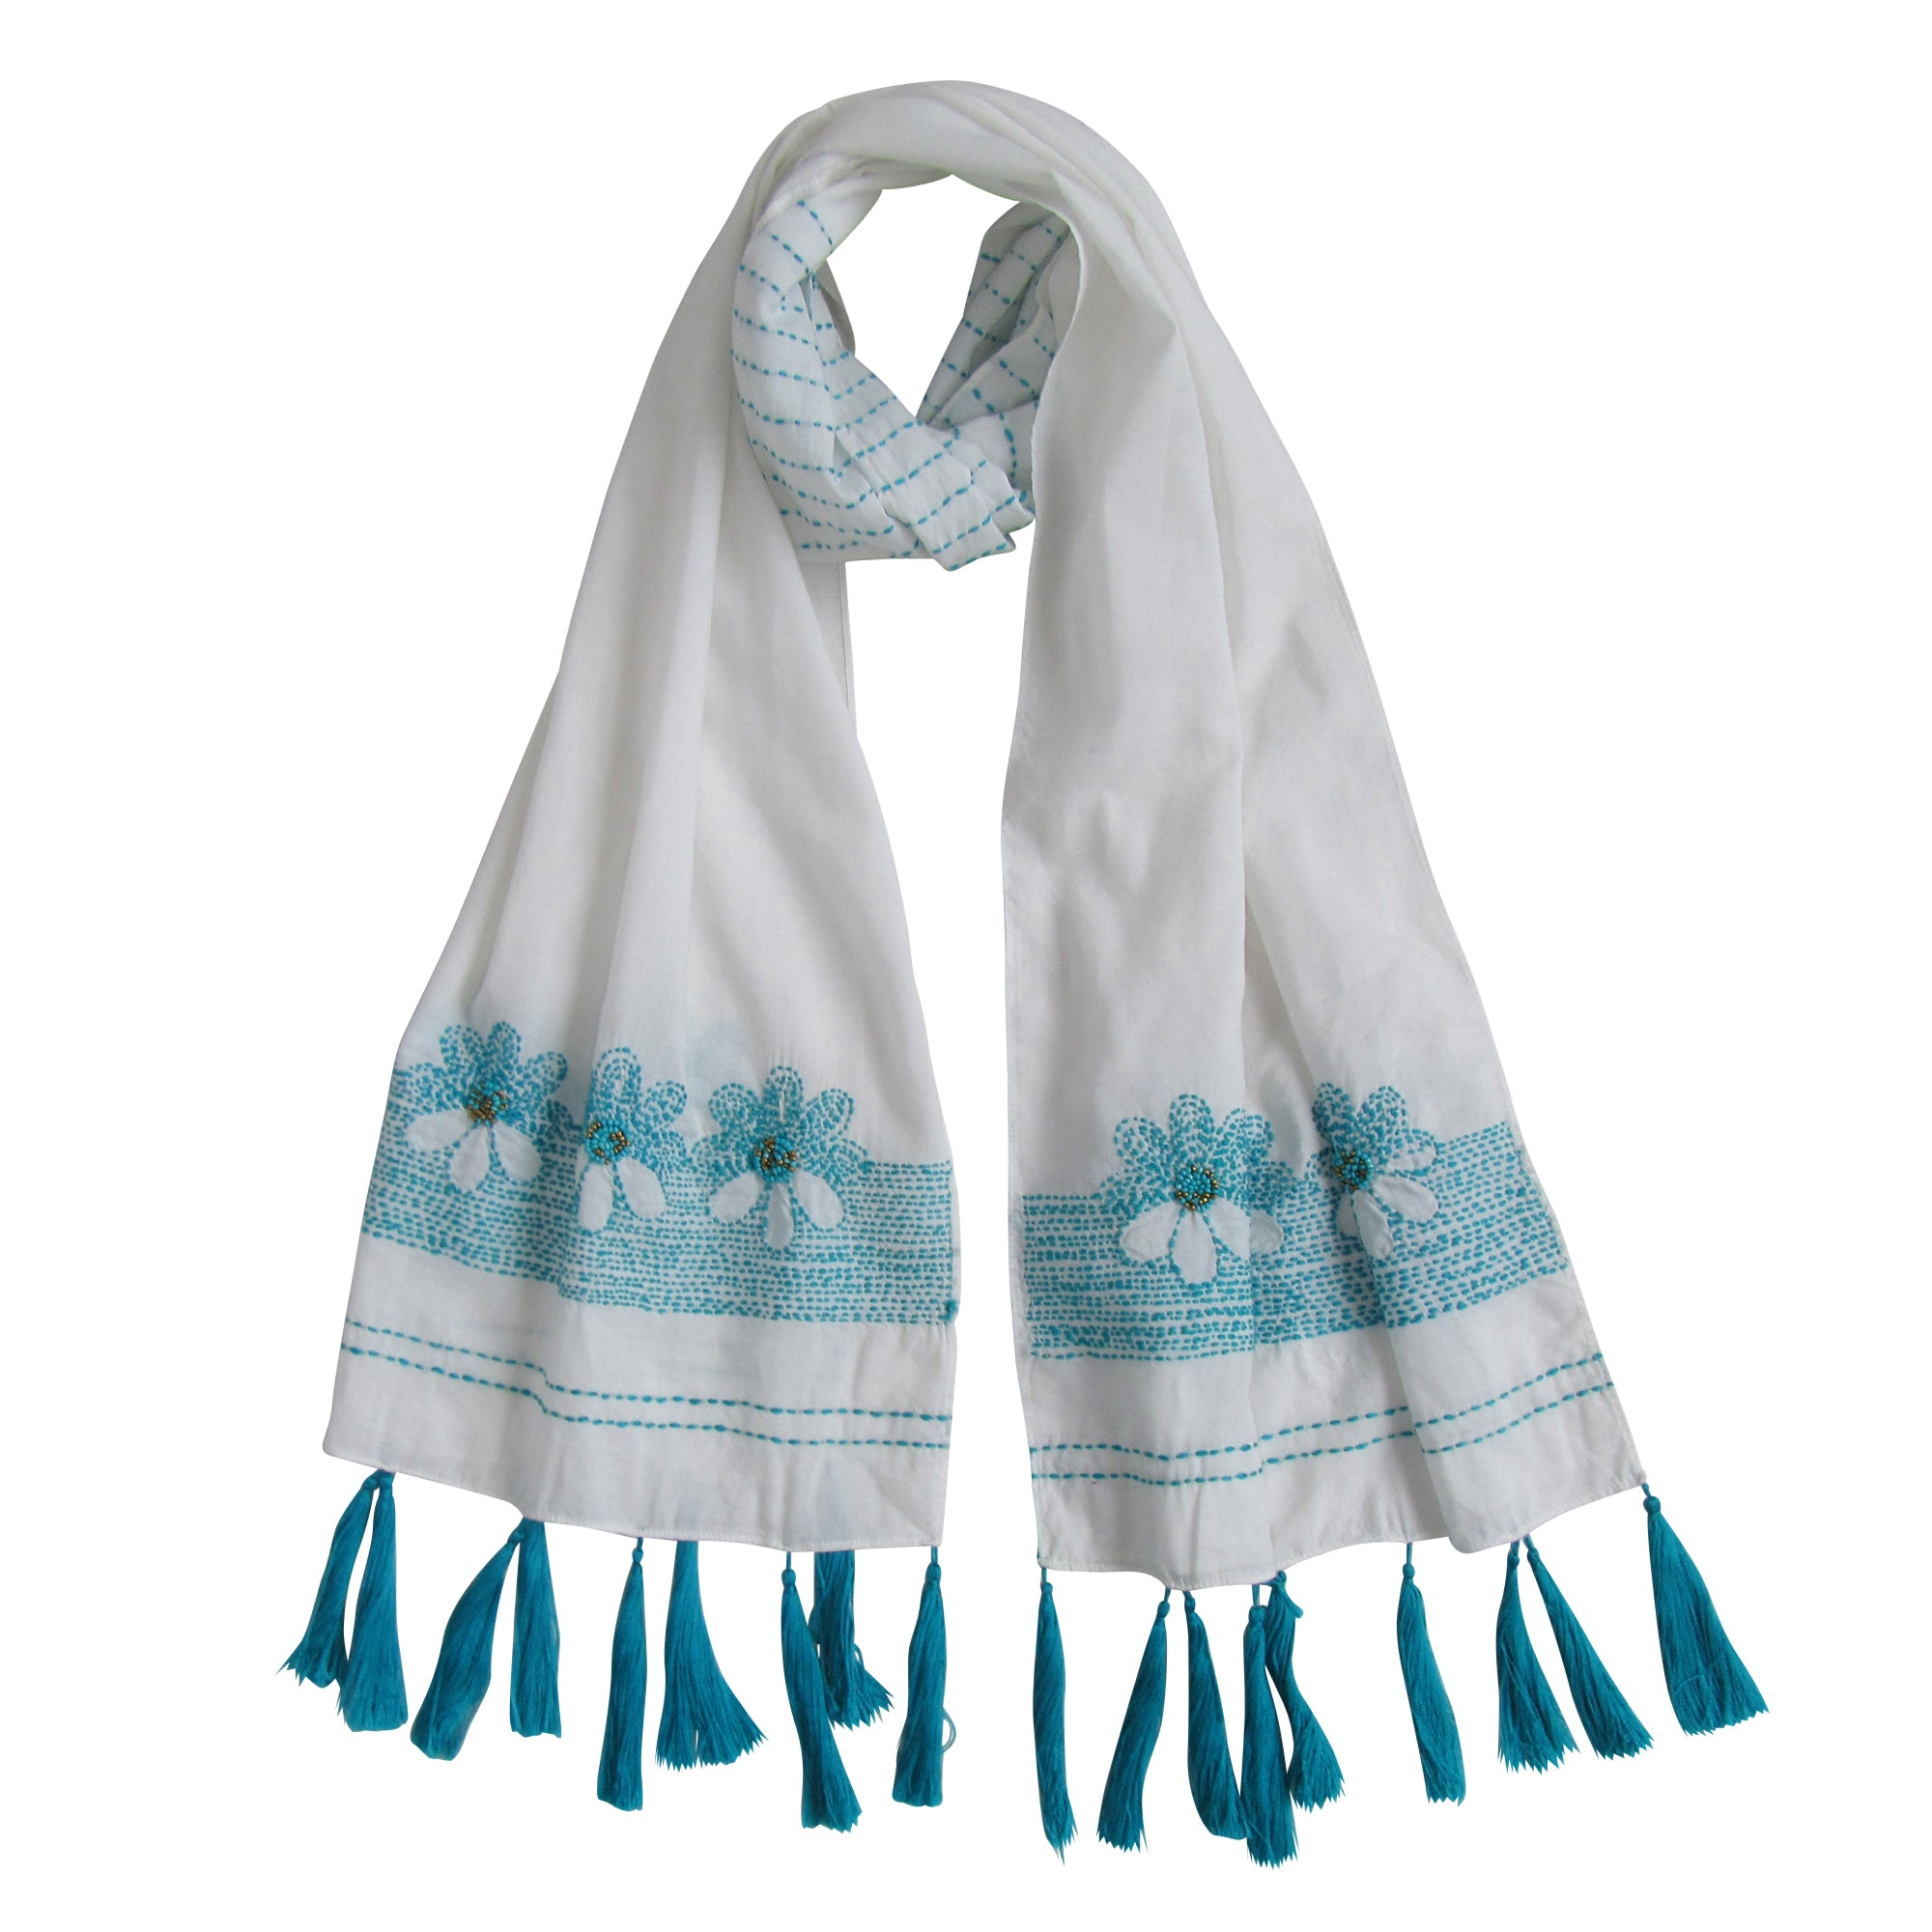 Hand-embroidered and Beaded Long Slim Scarf: White